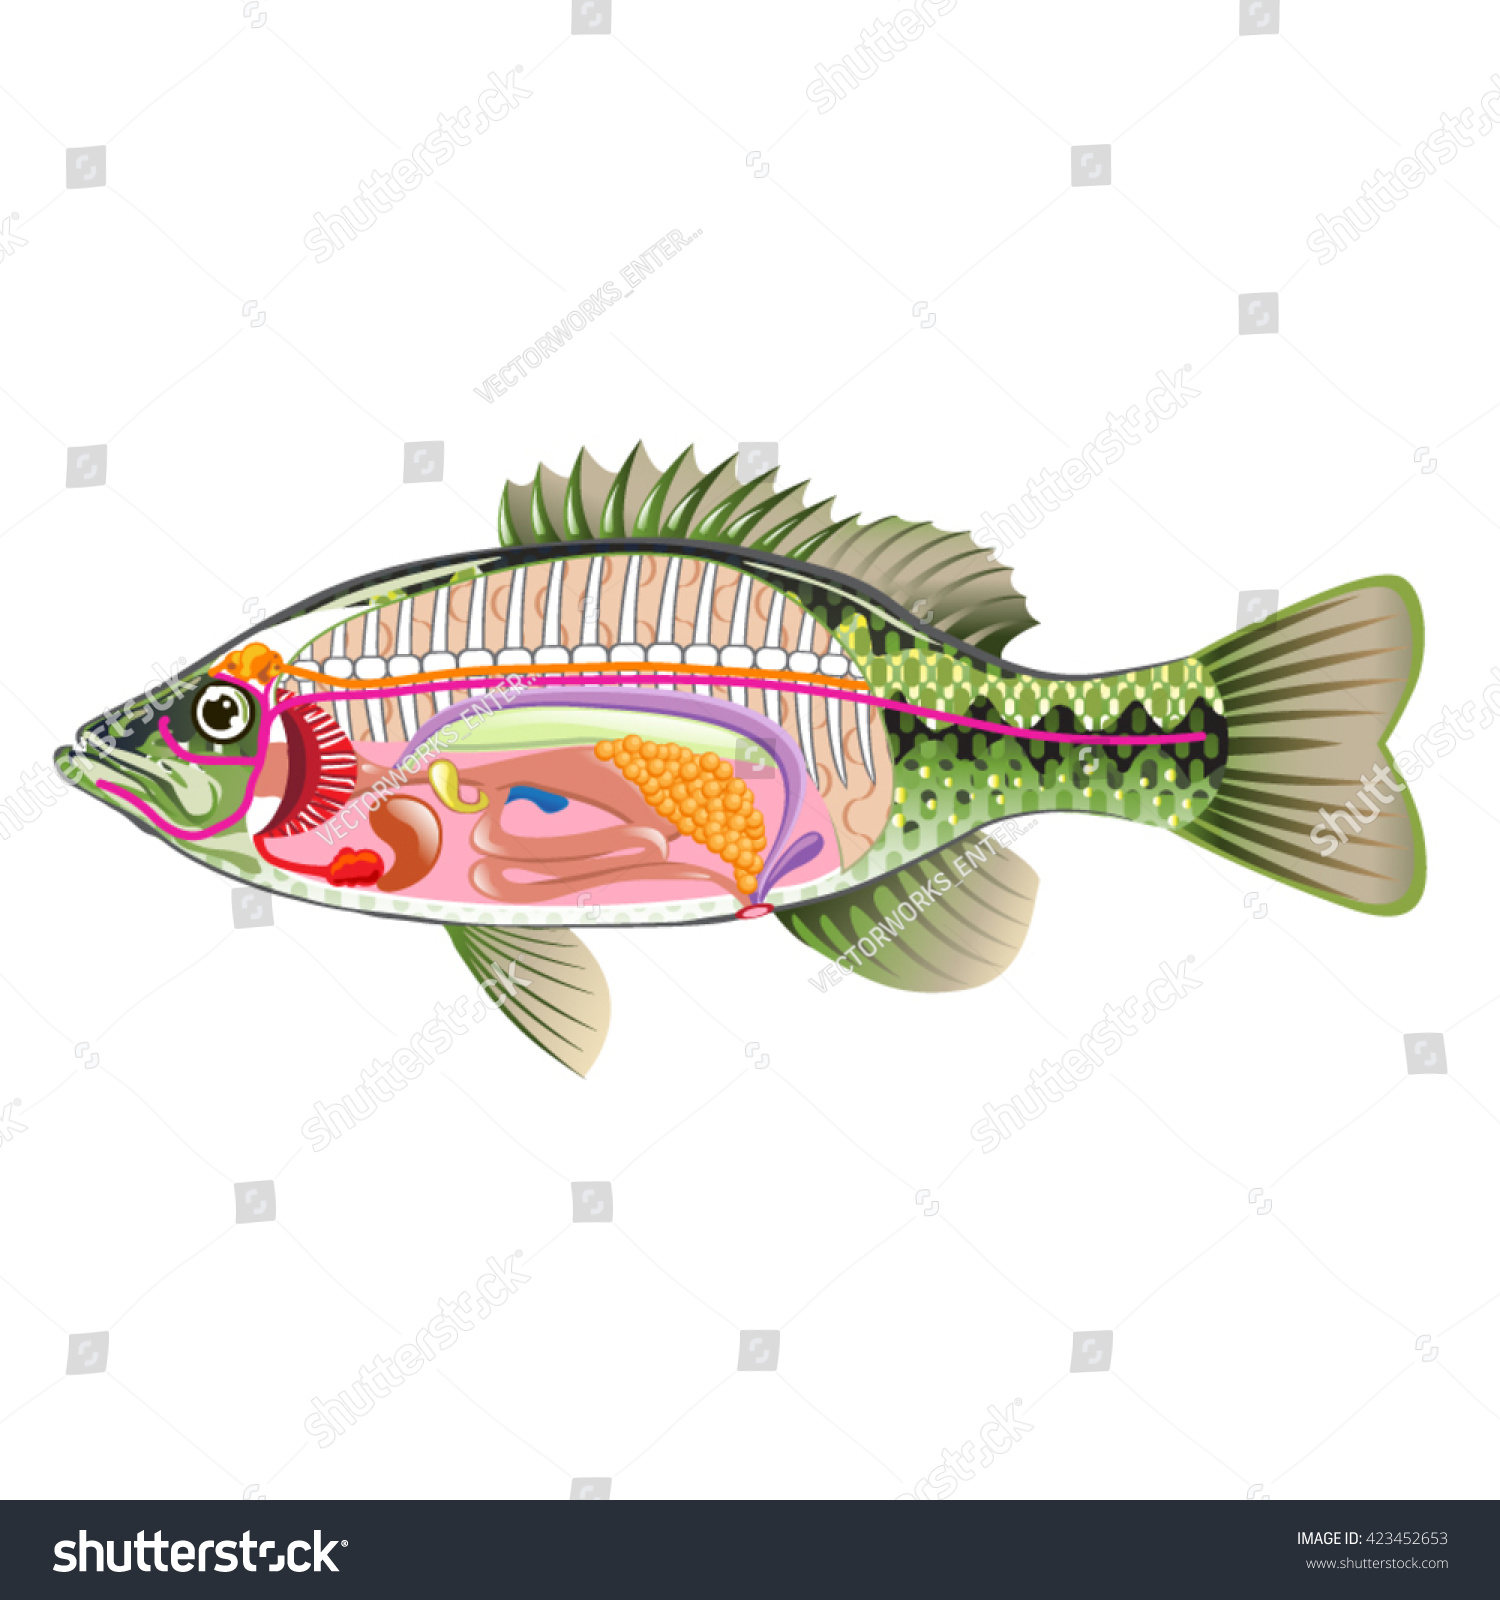 Fish Internal Organs Vector Art Diagram Stock Vector (Royalty Free ...